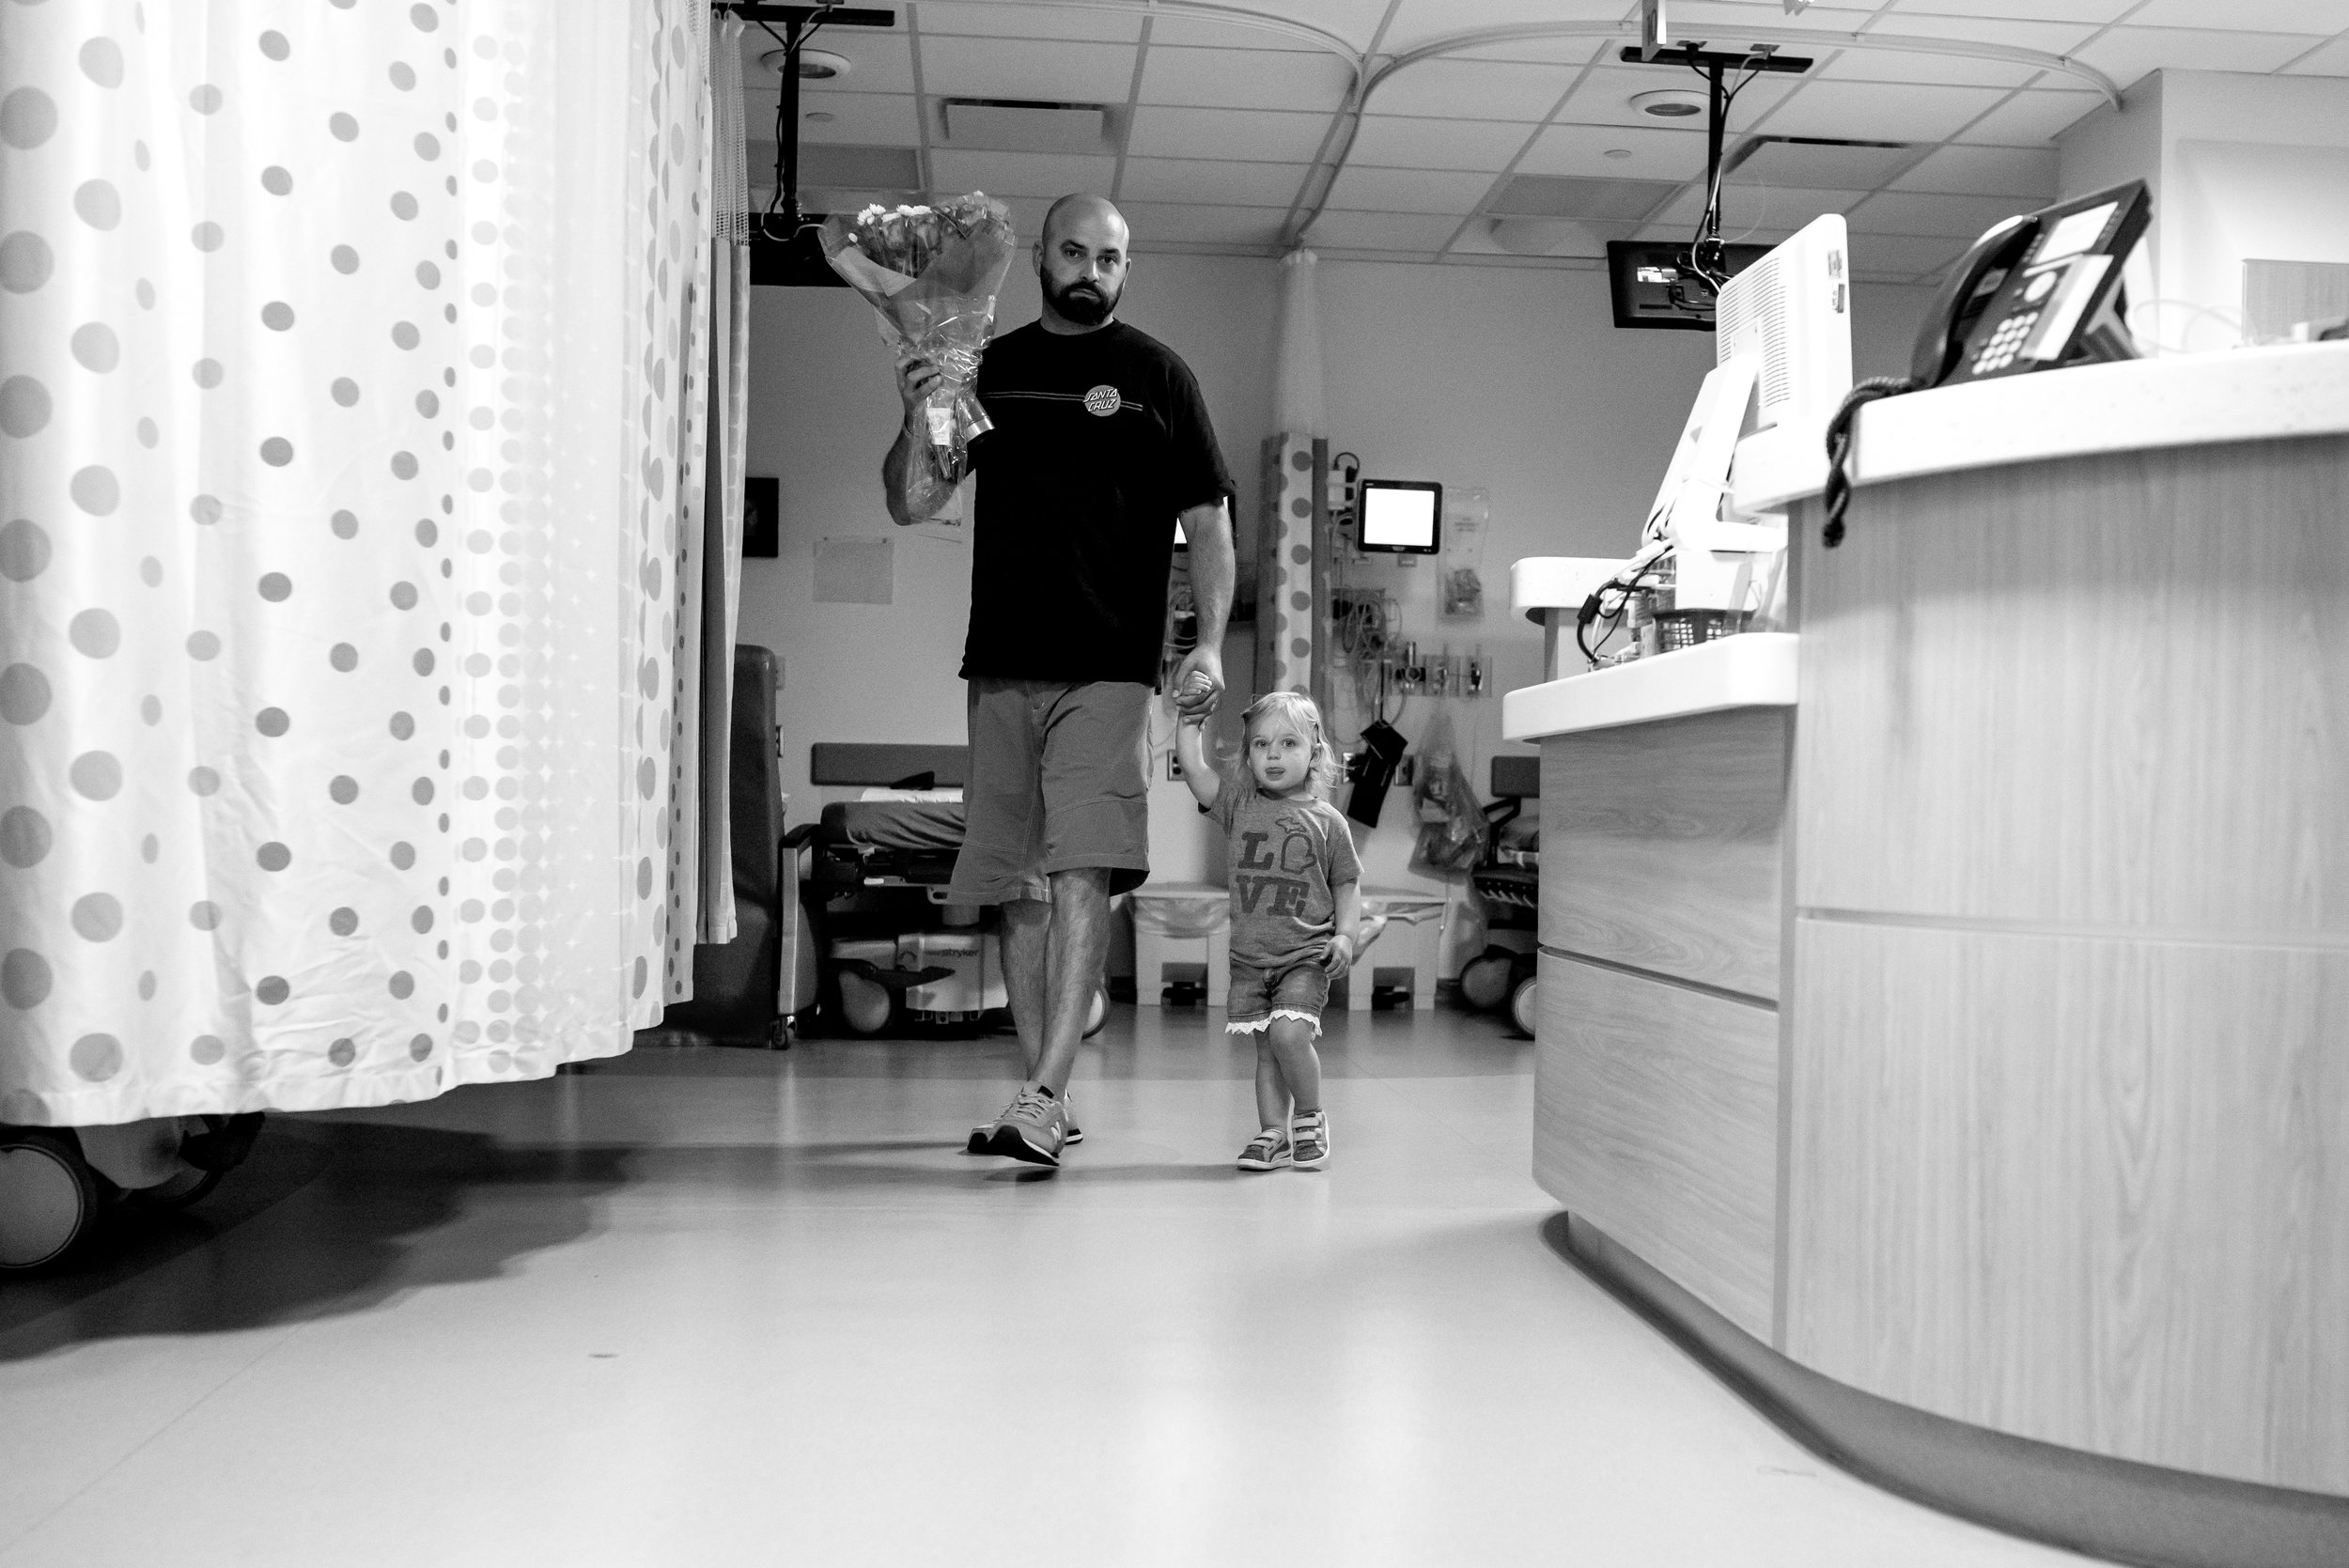 Dad and daughter bring flowers to daughter in hospital